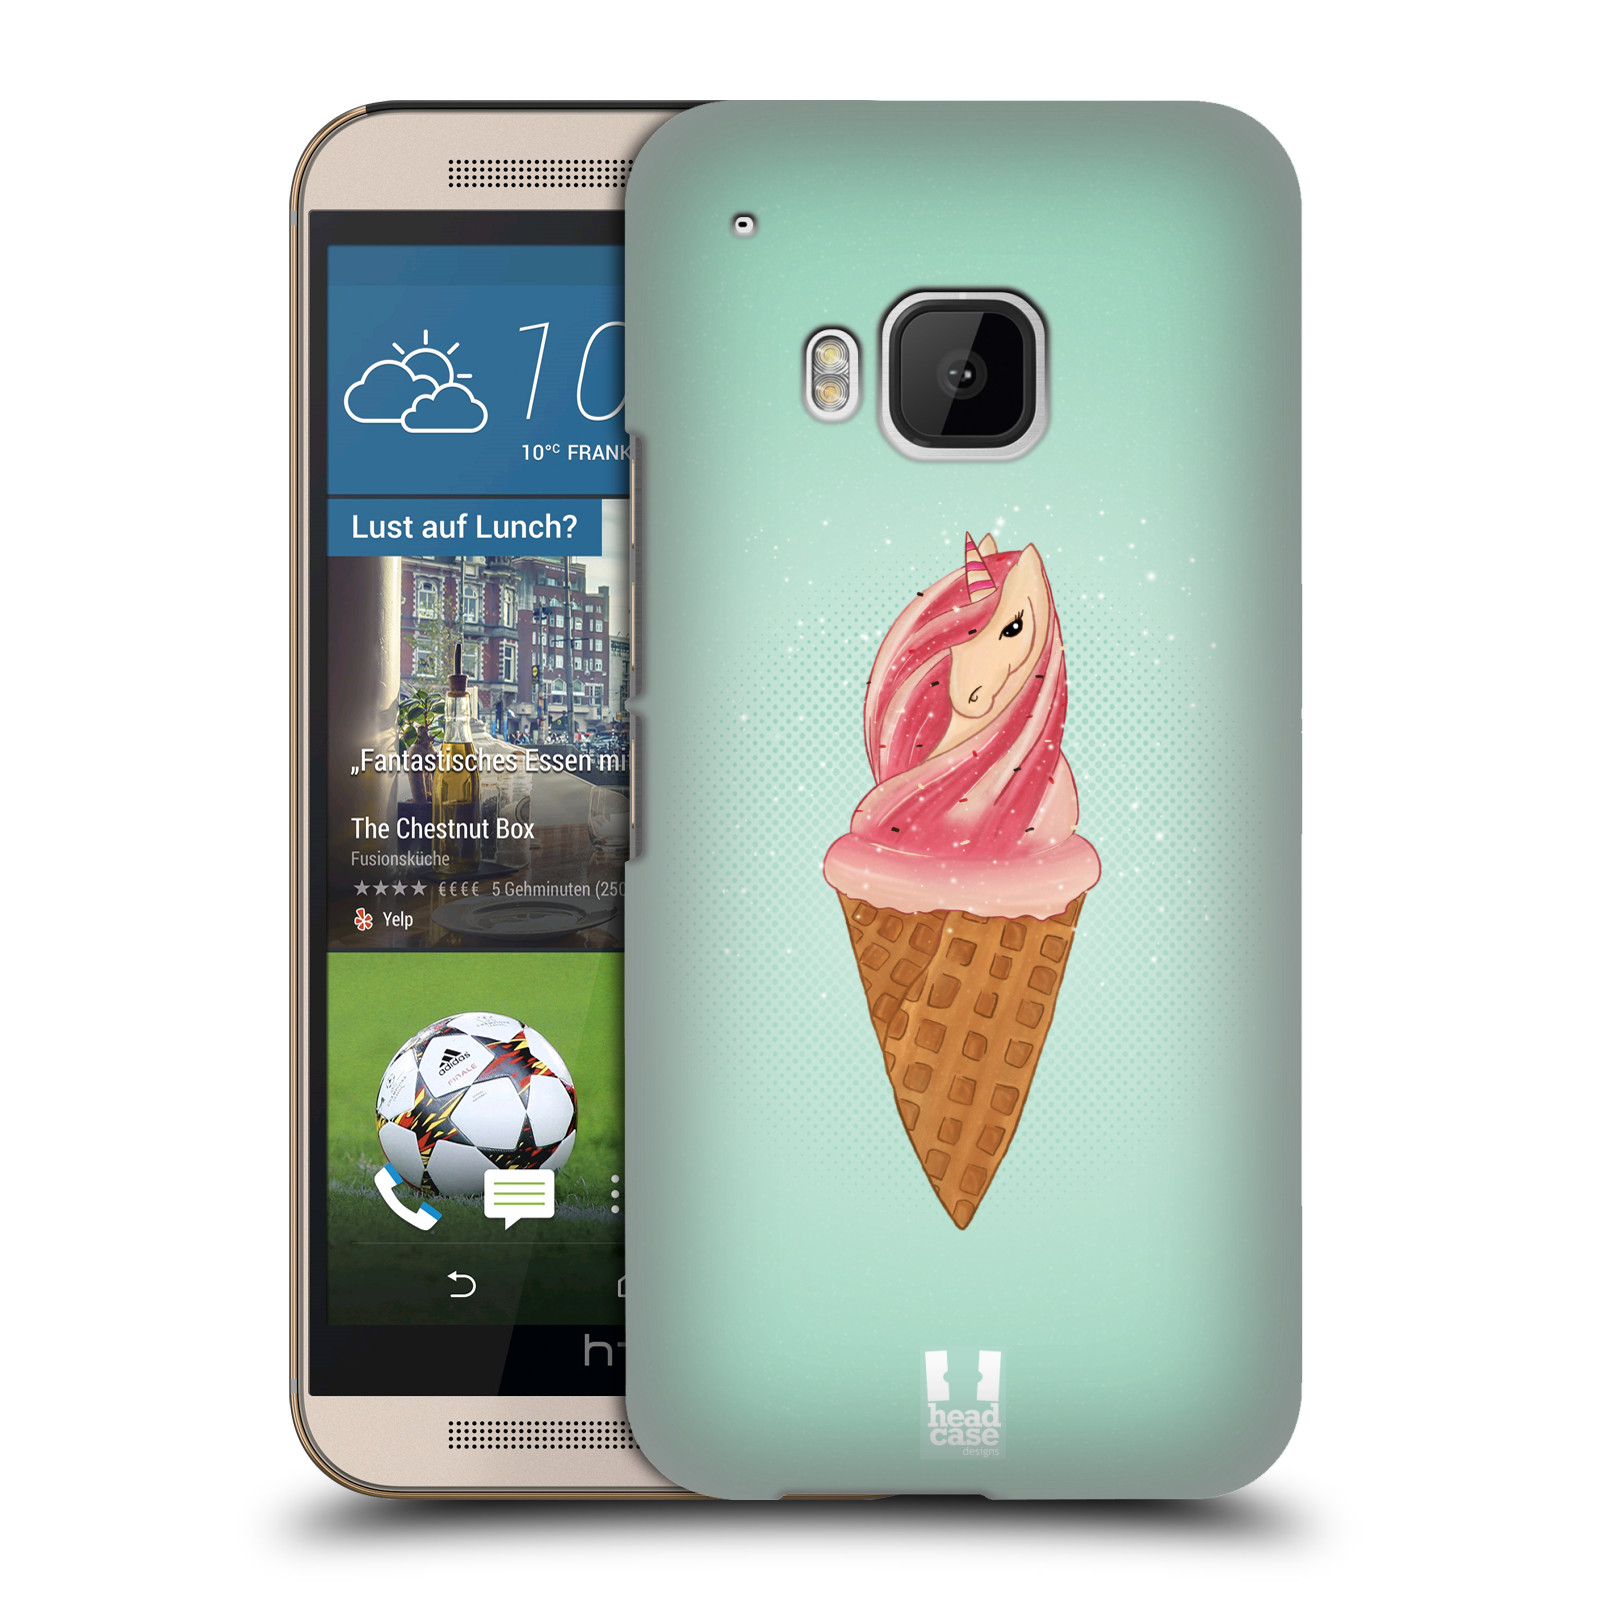 HEAD-CASE-DESIGNS-UNICONES-HARD-BACK-CASE-FOR-HTC-PHONES-1